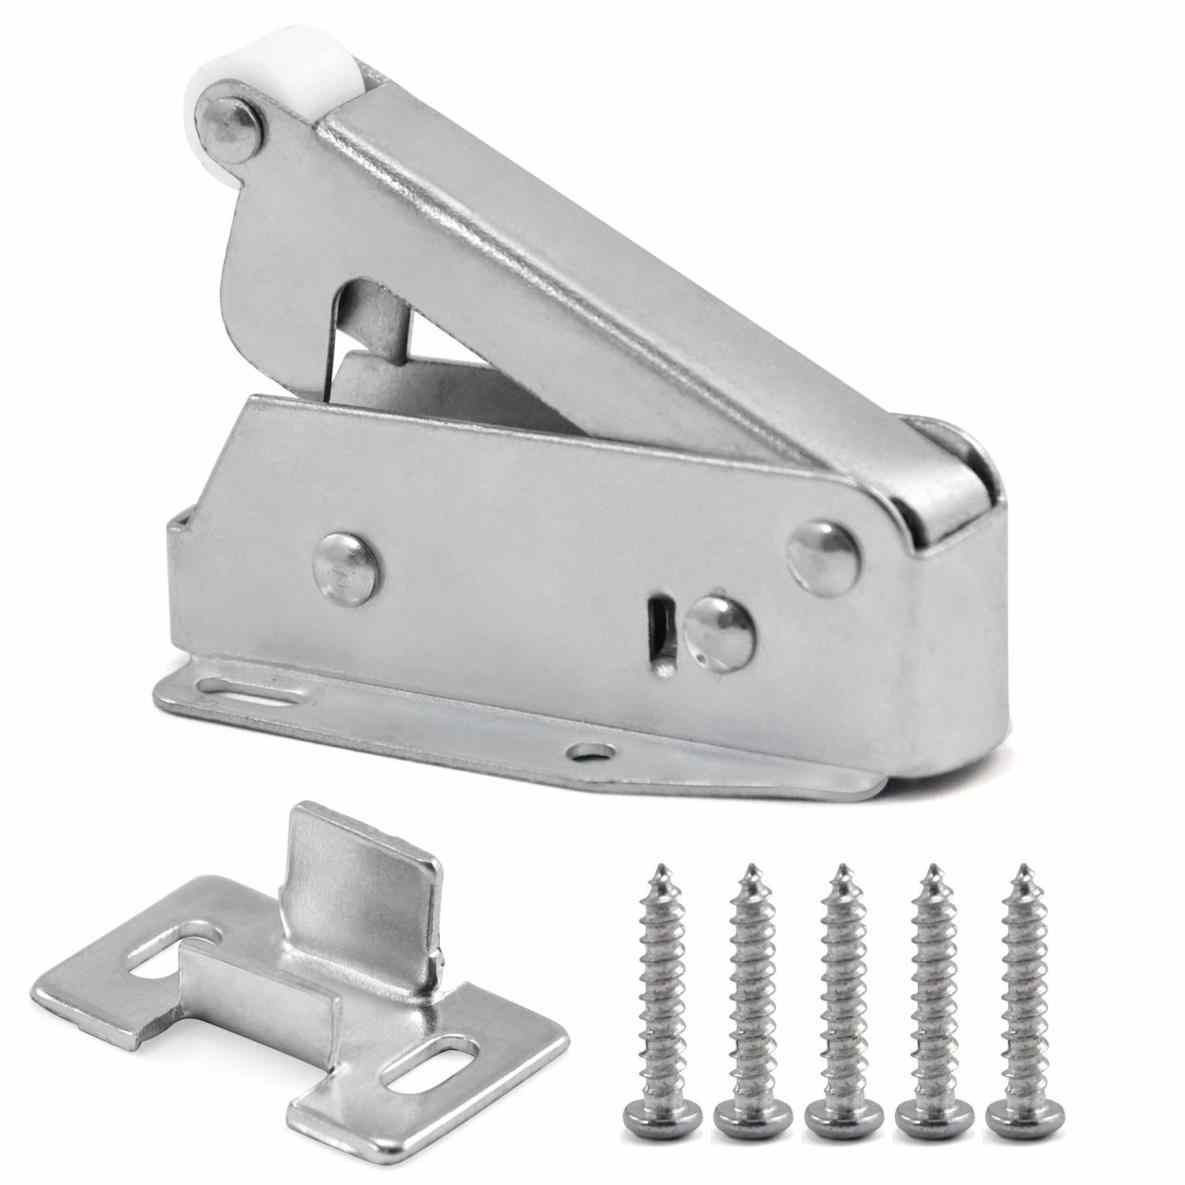 Cabinet Latch Catch Ebay Double Pressure Push To Open Touch Black White Double Push Magnetic Door Catch Magnetic Pressure Push To Door Catches Door Locks Doors